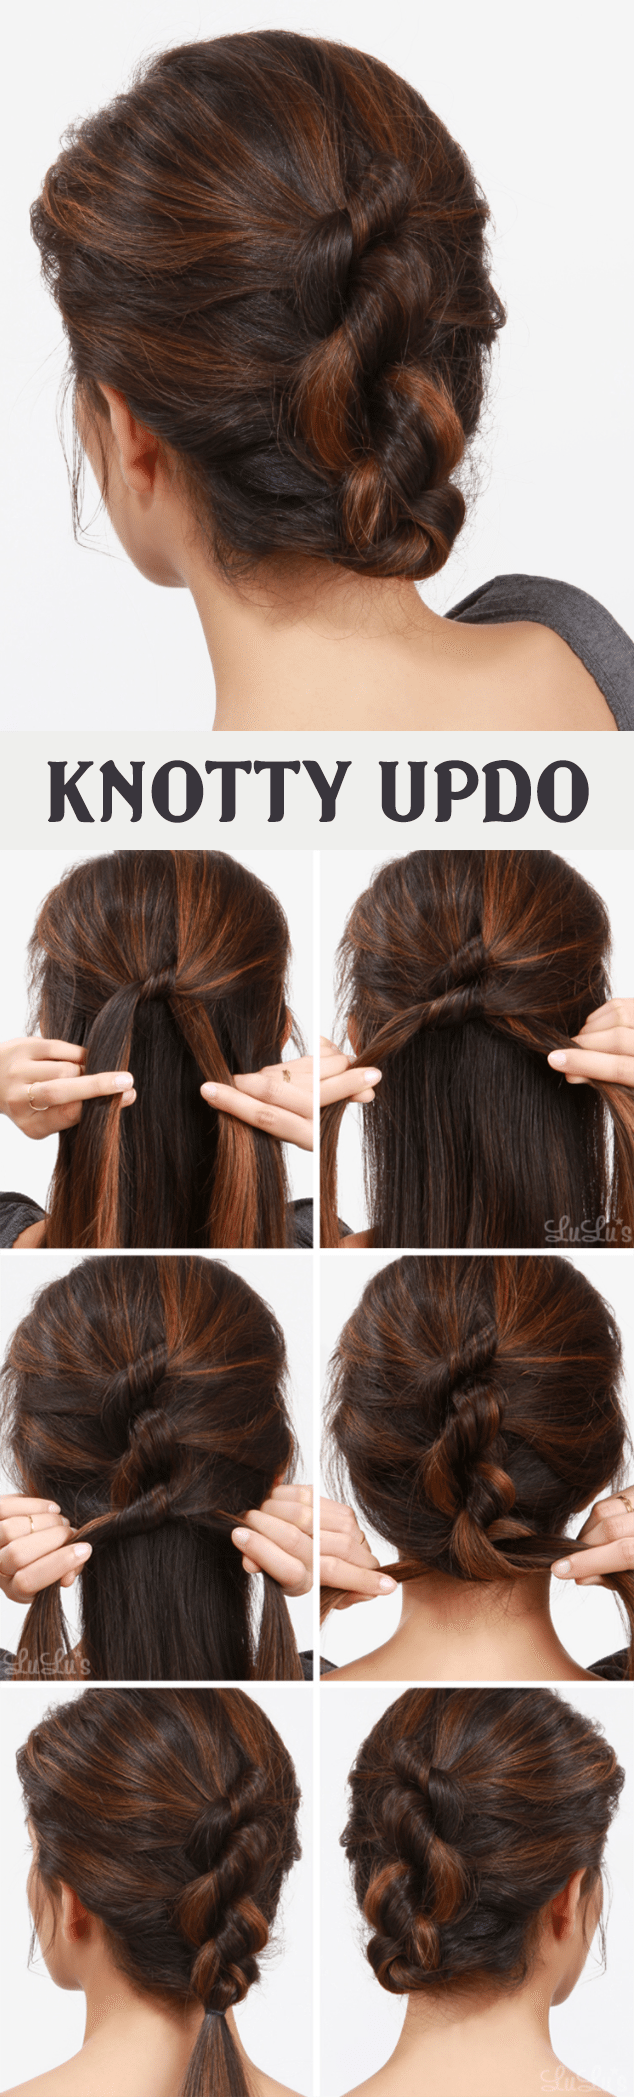 KNOTTY UPDO HAIRSTYLE